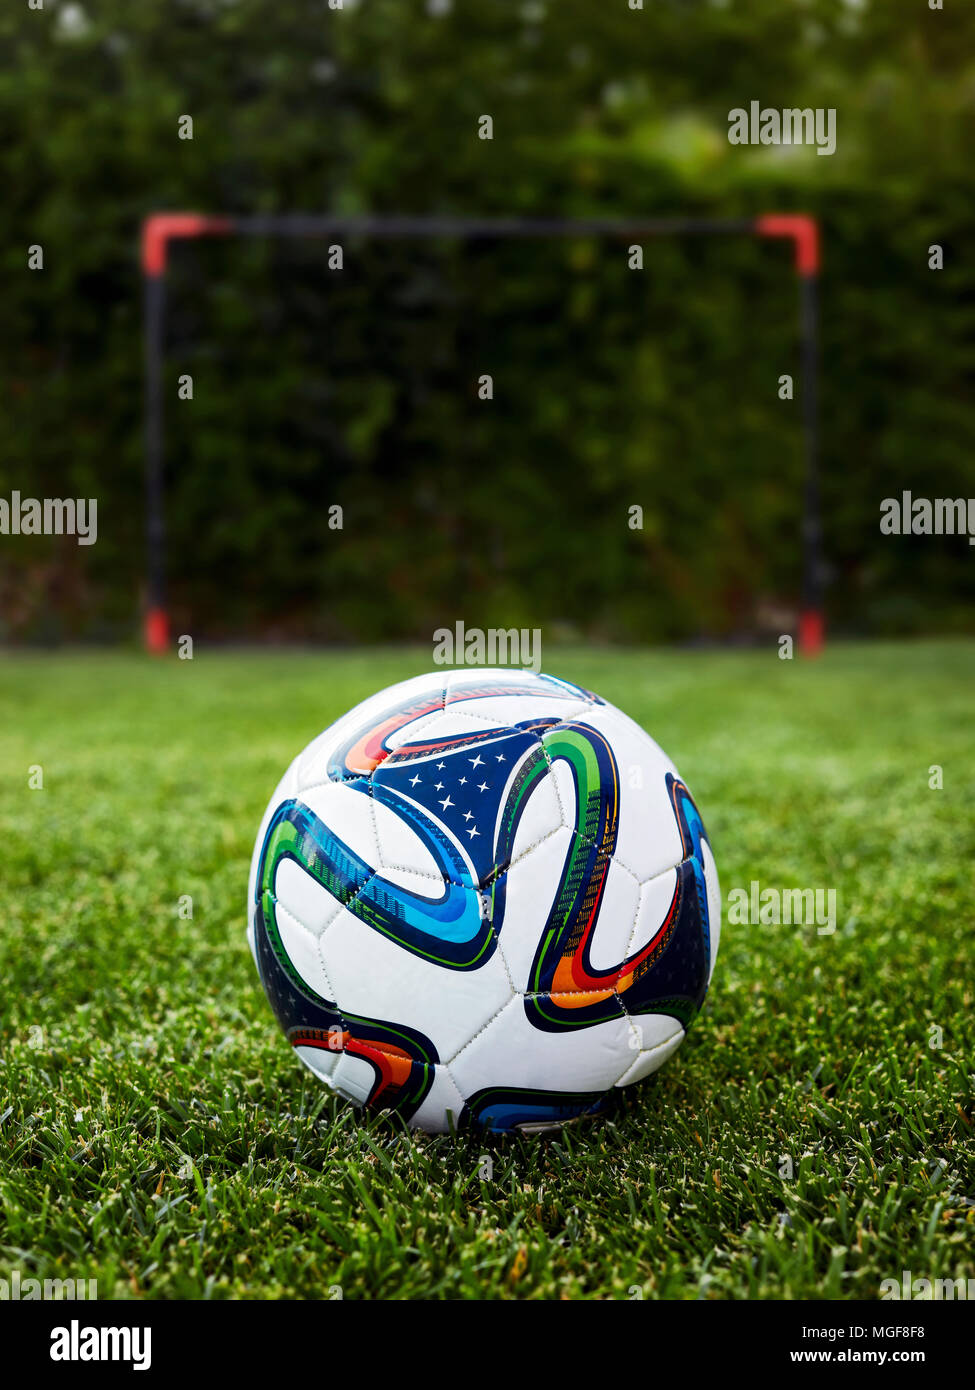 7ff7d8fb3 soccer ball on the grass field in front of a goal post Stock Photo ...